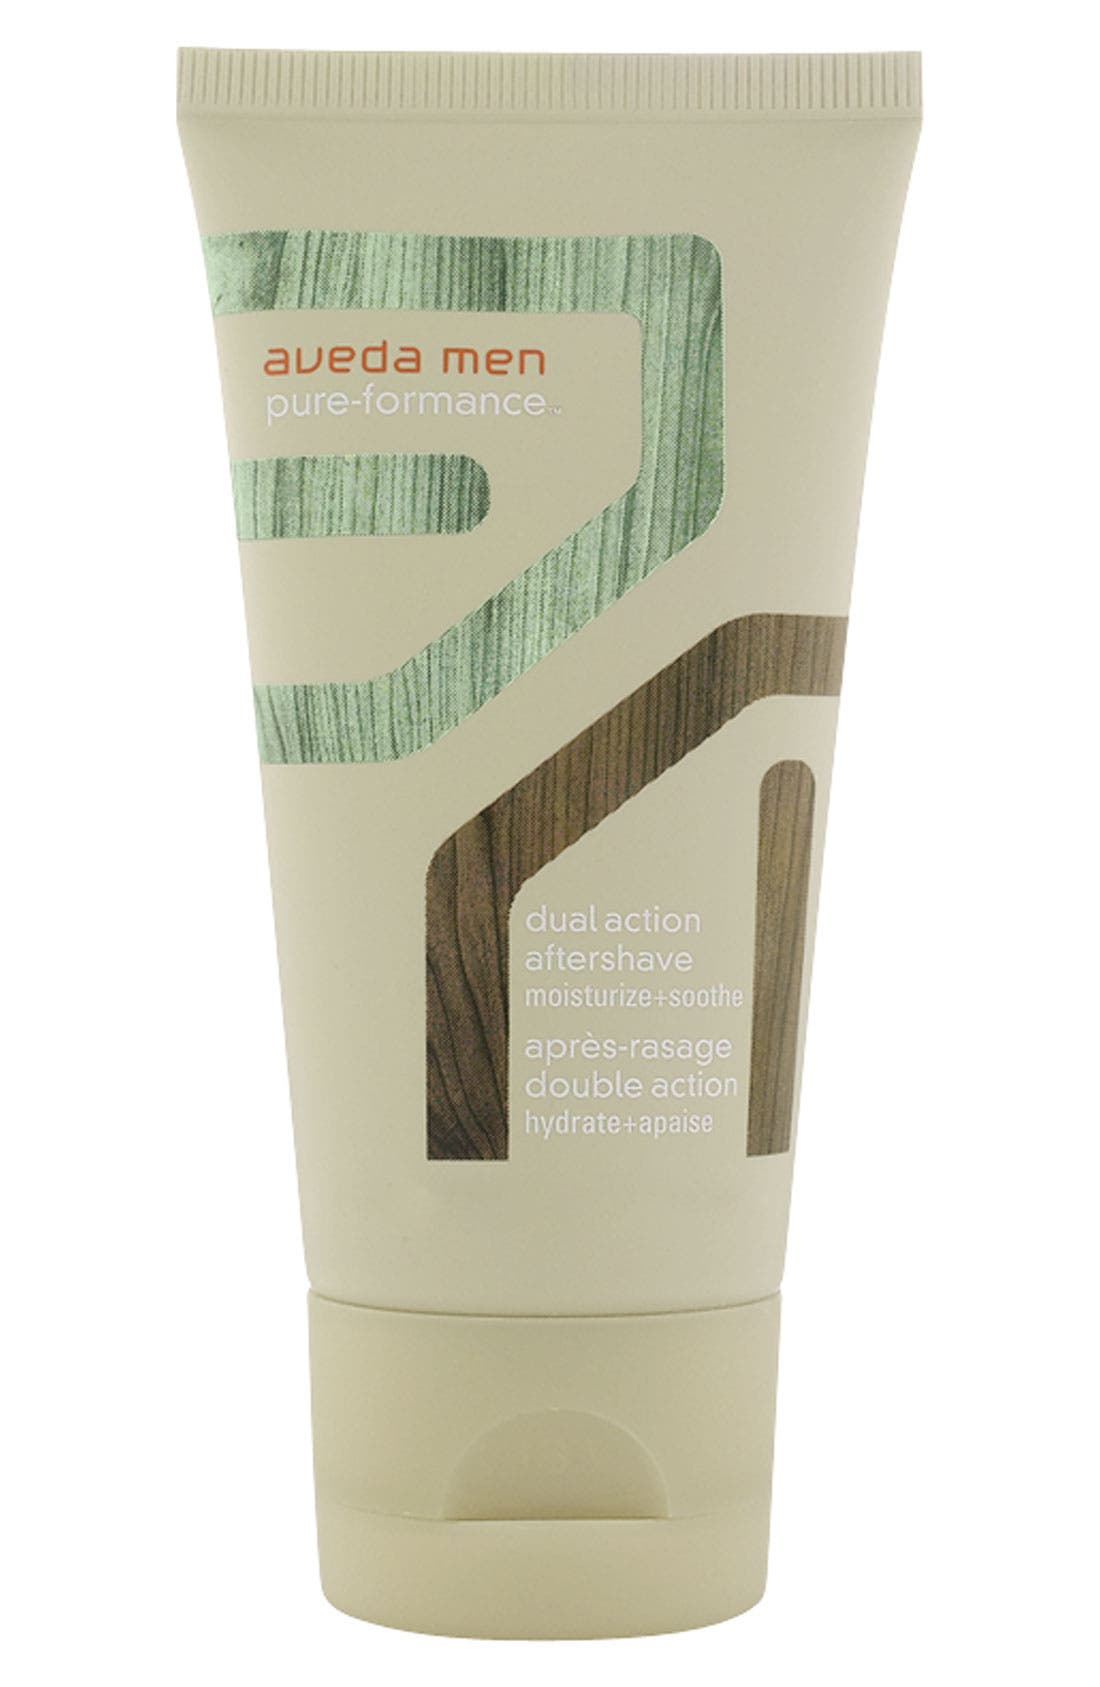 Aveda Men 'pure-formance™' Dual Action Aftershave